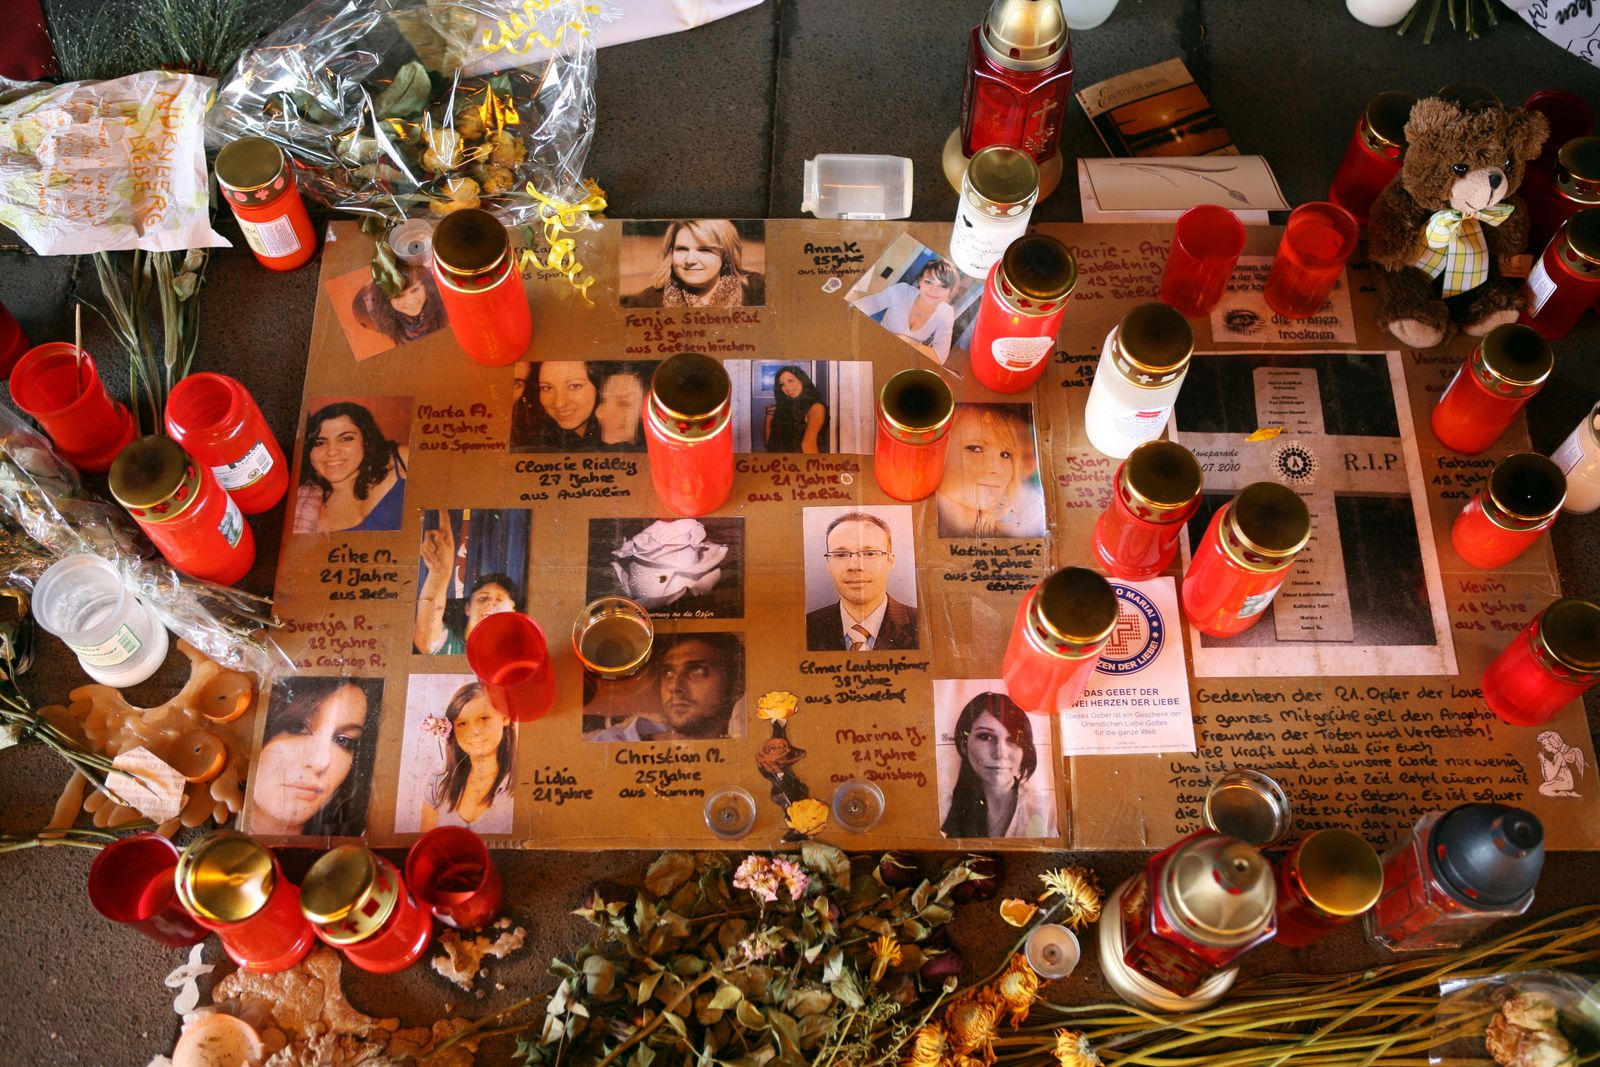 Candles and flowers are laid down with p